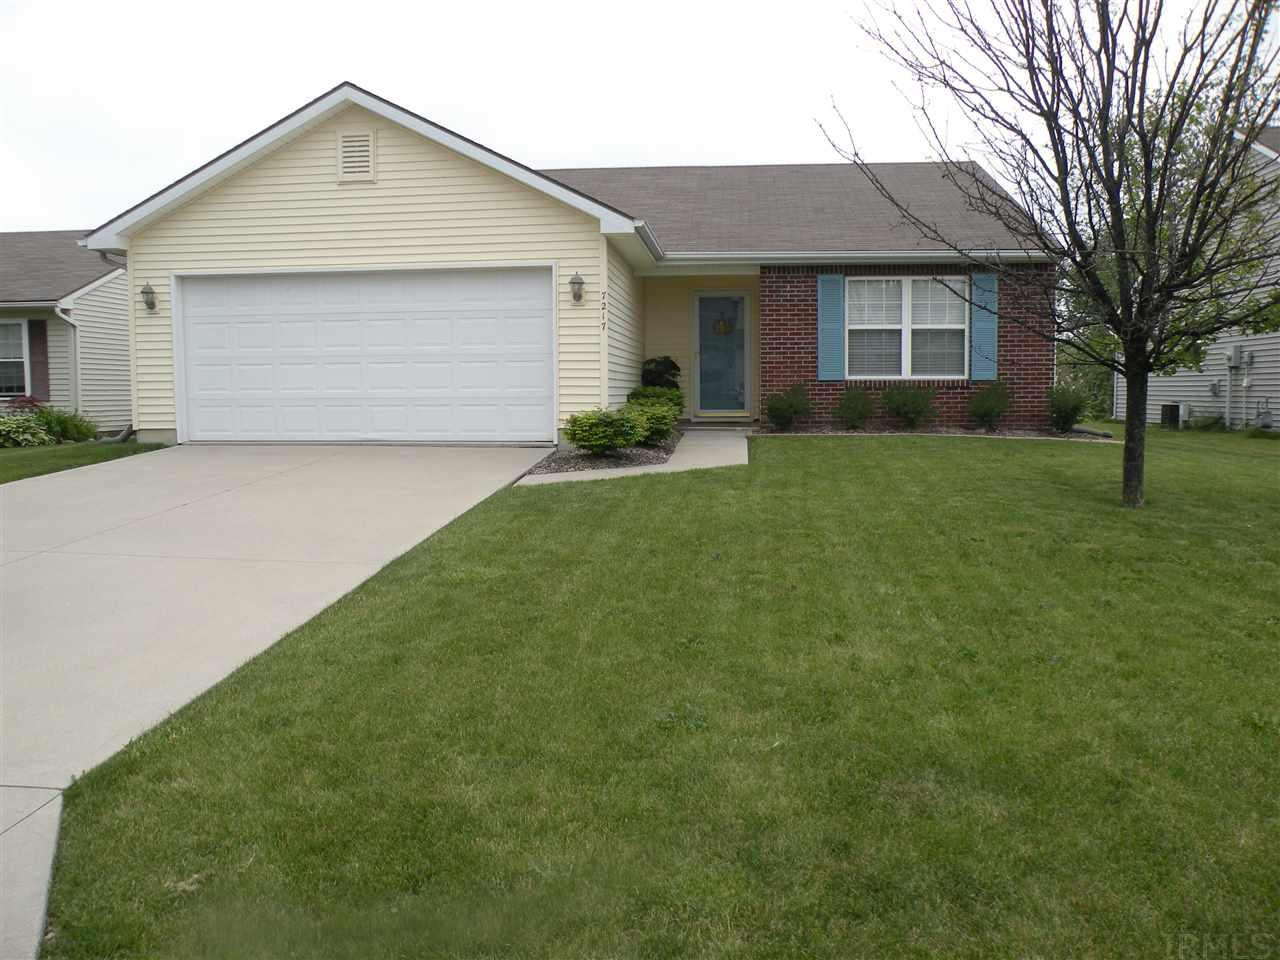 7217 Royal Troon Court, Fort Wayne, IN 46814